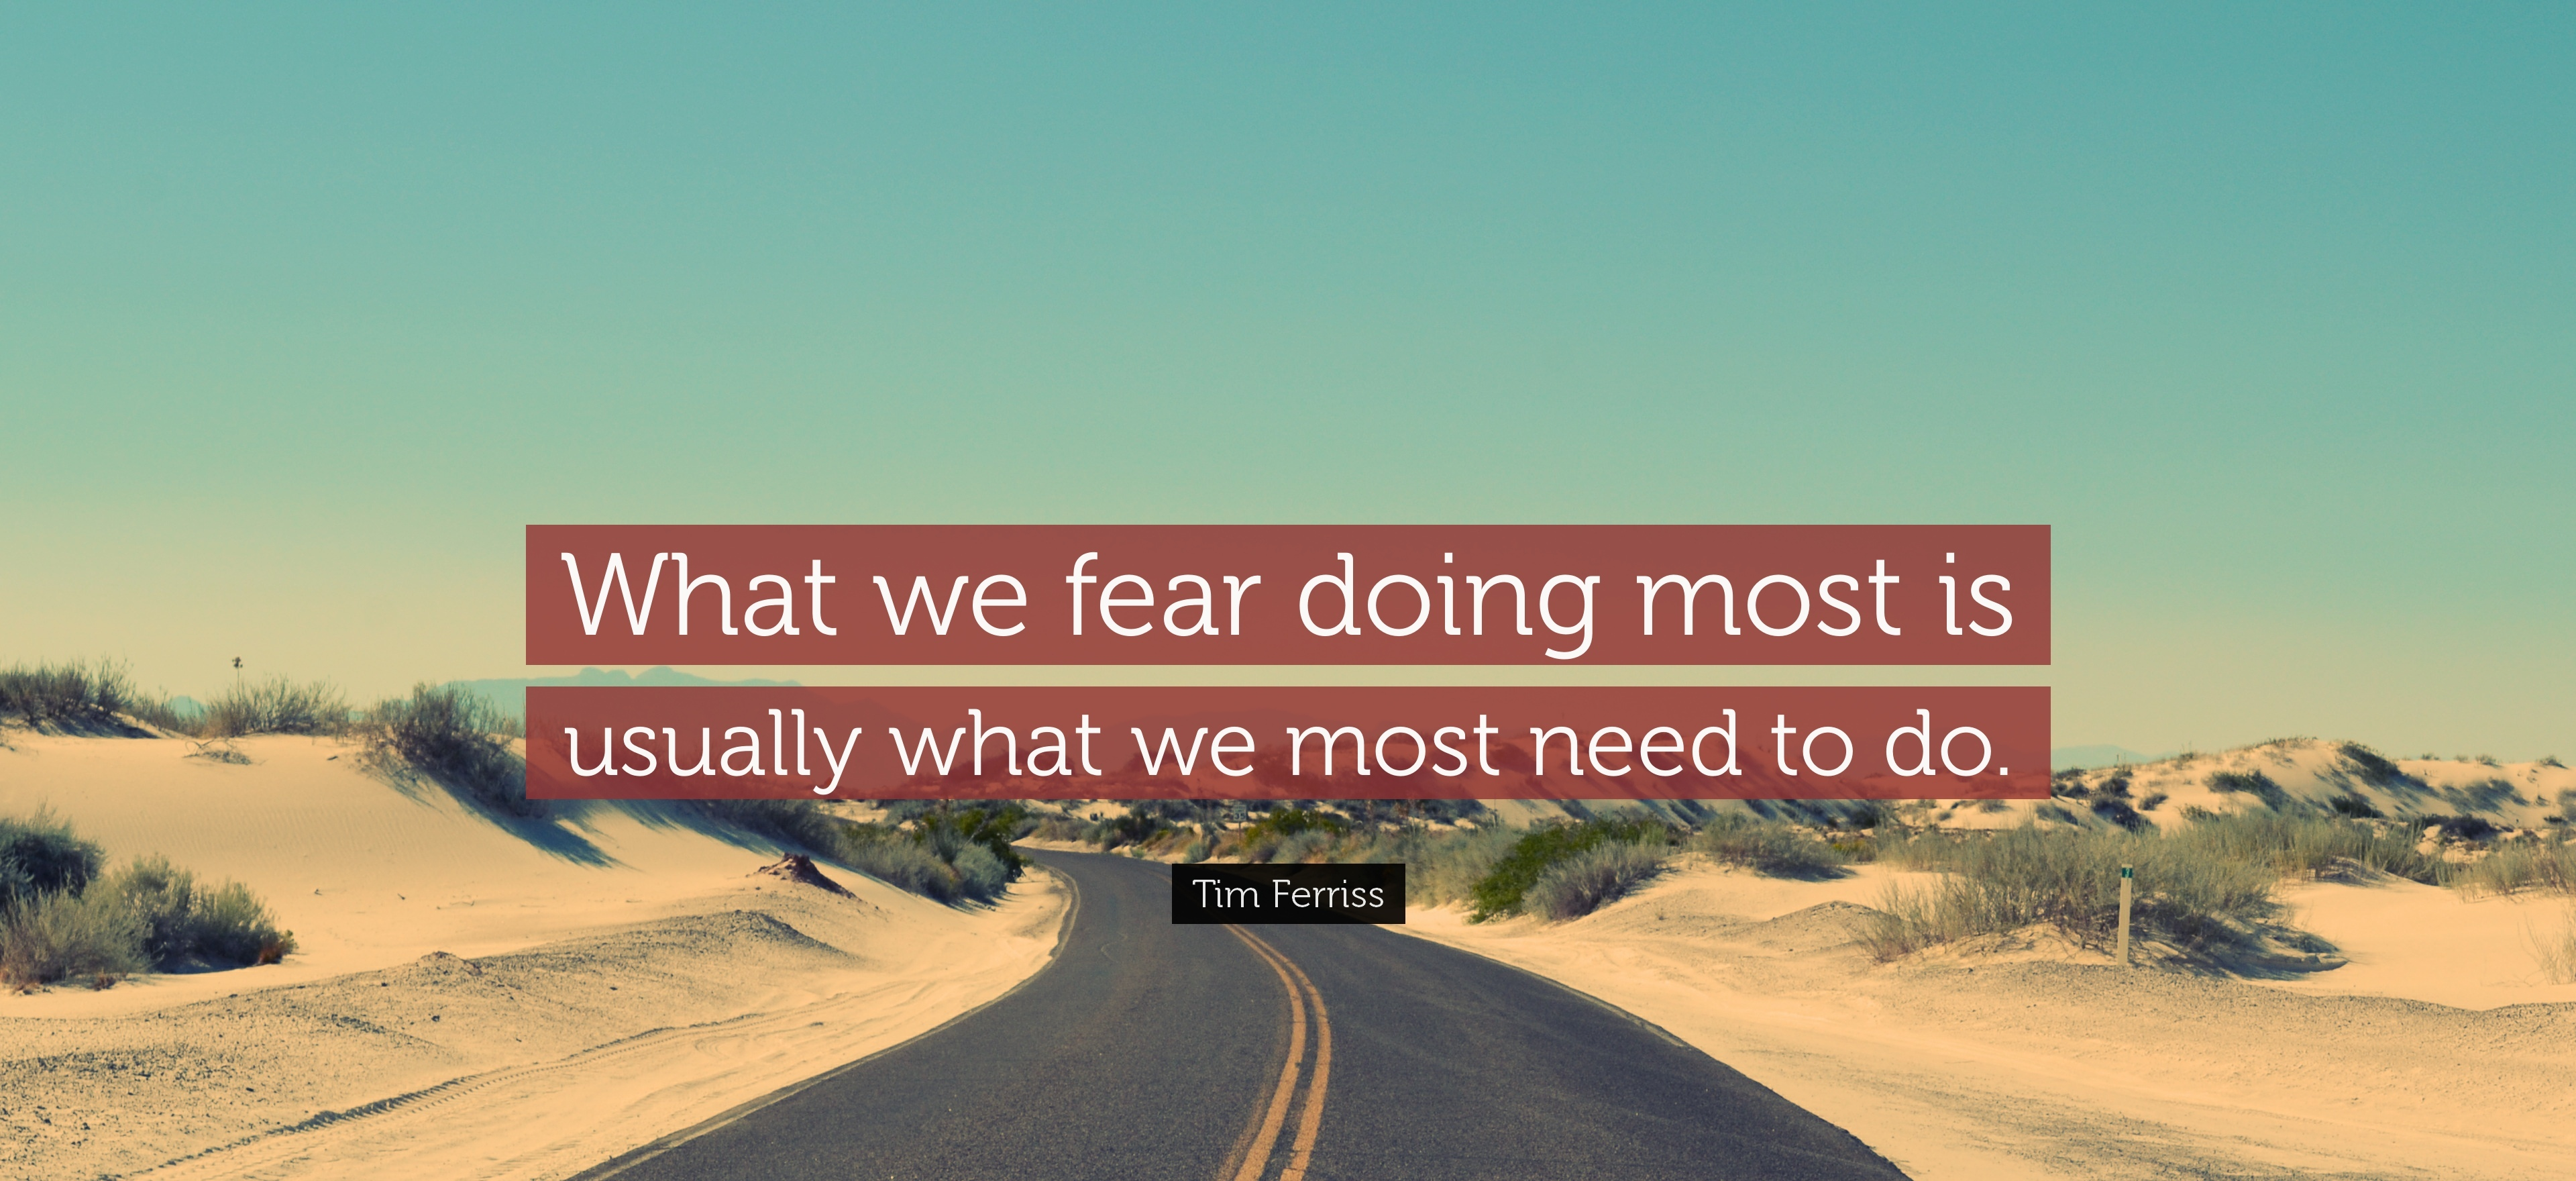 54543-tim-ferriss-quote-what-we-fear-doing-most-is-usually-what-we-most